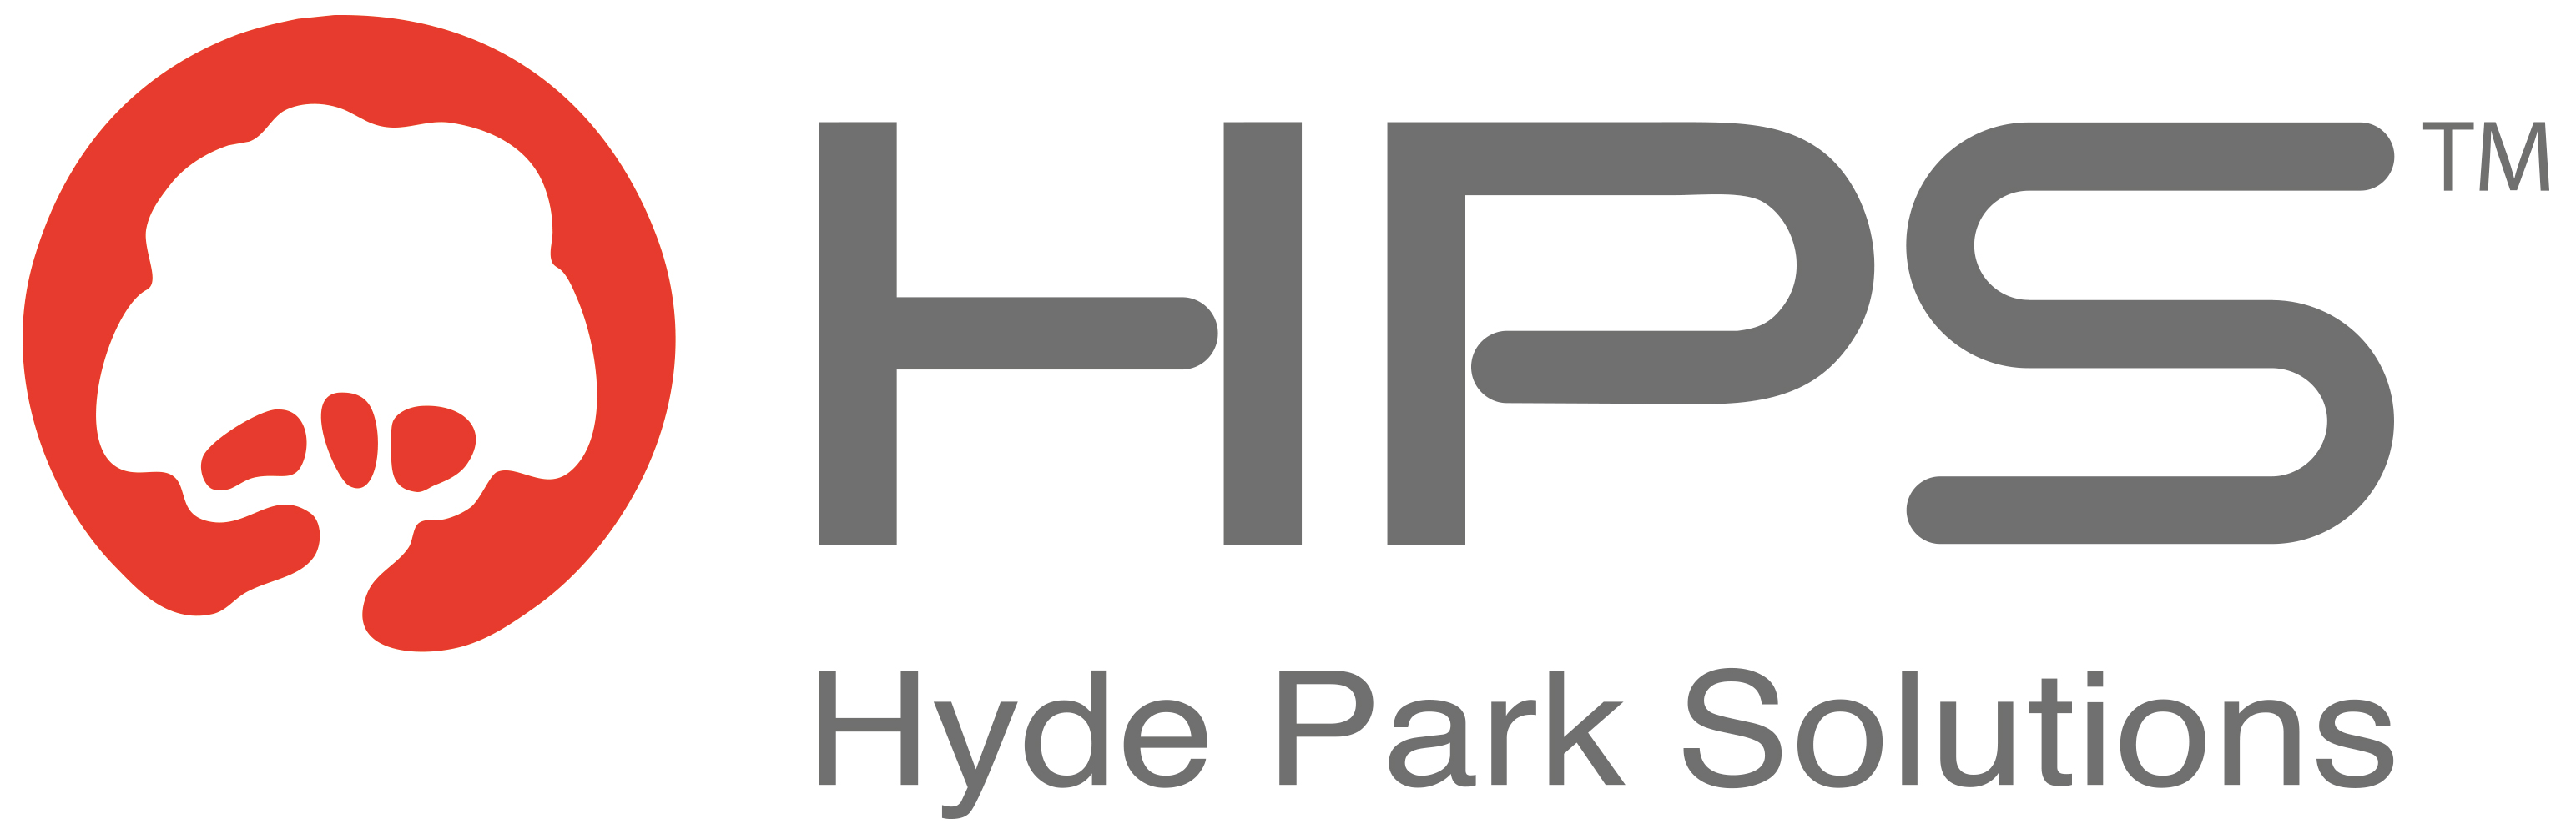 hydeparksolutions